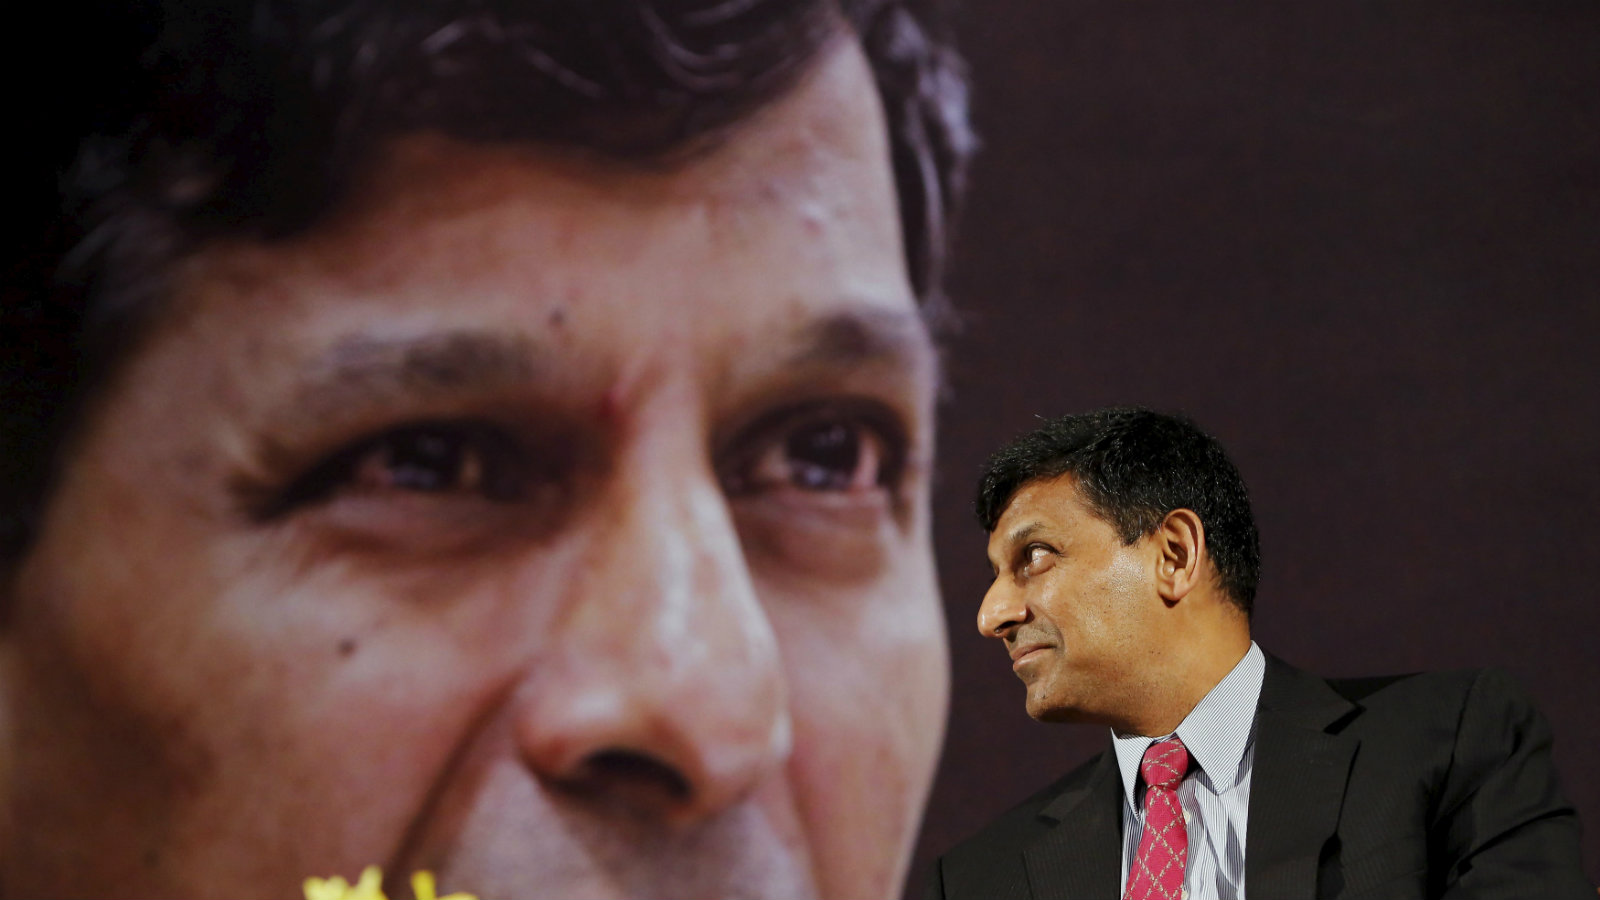 Reserve Bank of India (RBI) Governor Raghuram Rajan smiles before delivering a lecture at the India Habitat Centre in New Delhi, India, November 6, 2015. Rajan said on Friday bringing down inflation would help stabilise the Indian rupee, while adding he welcomed government efforts to boost economic growth through structural reforms.